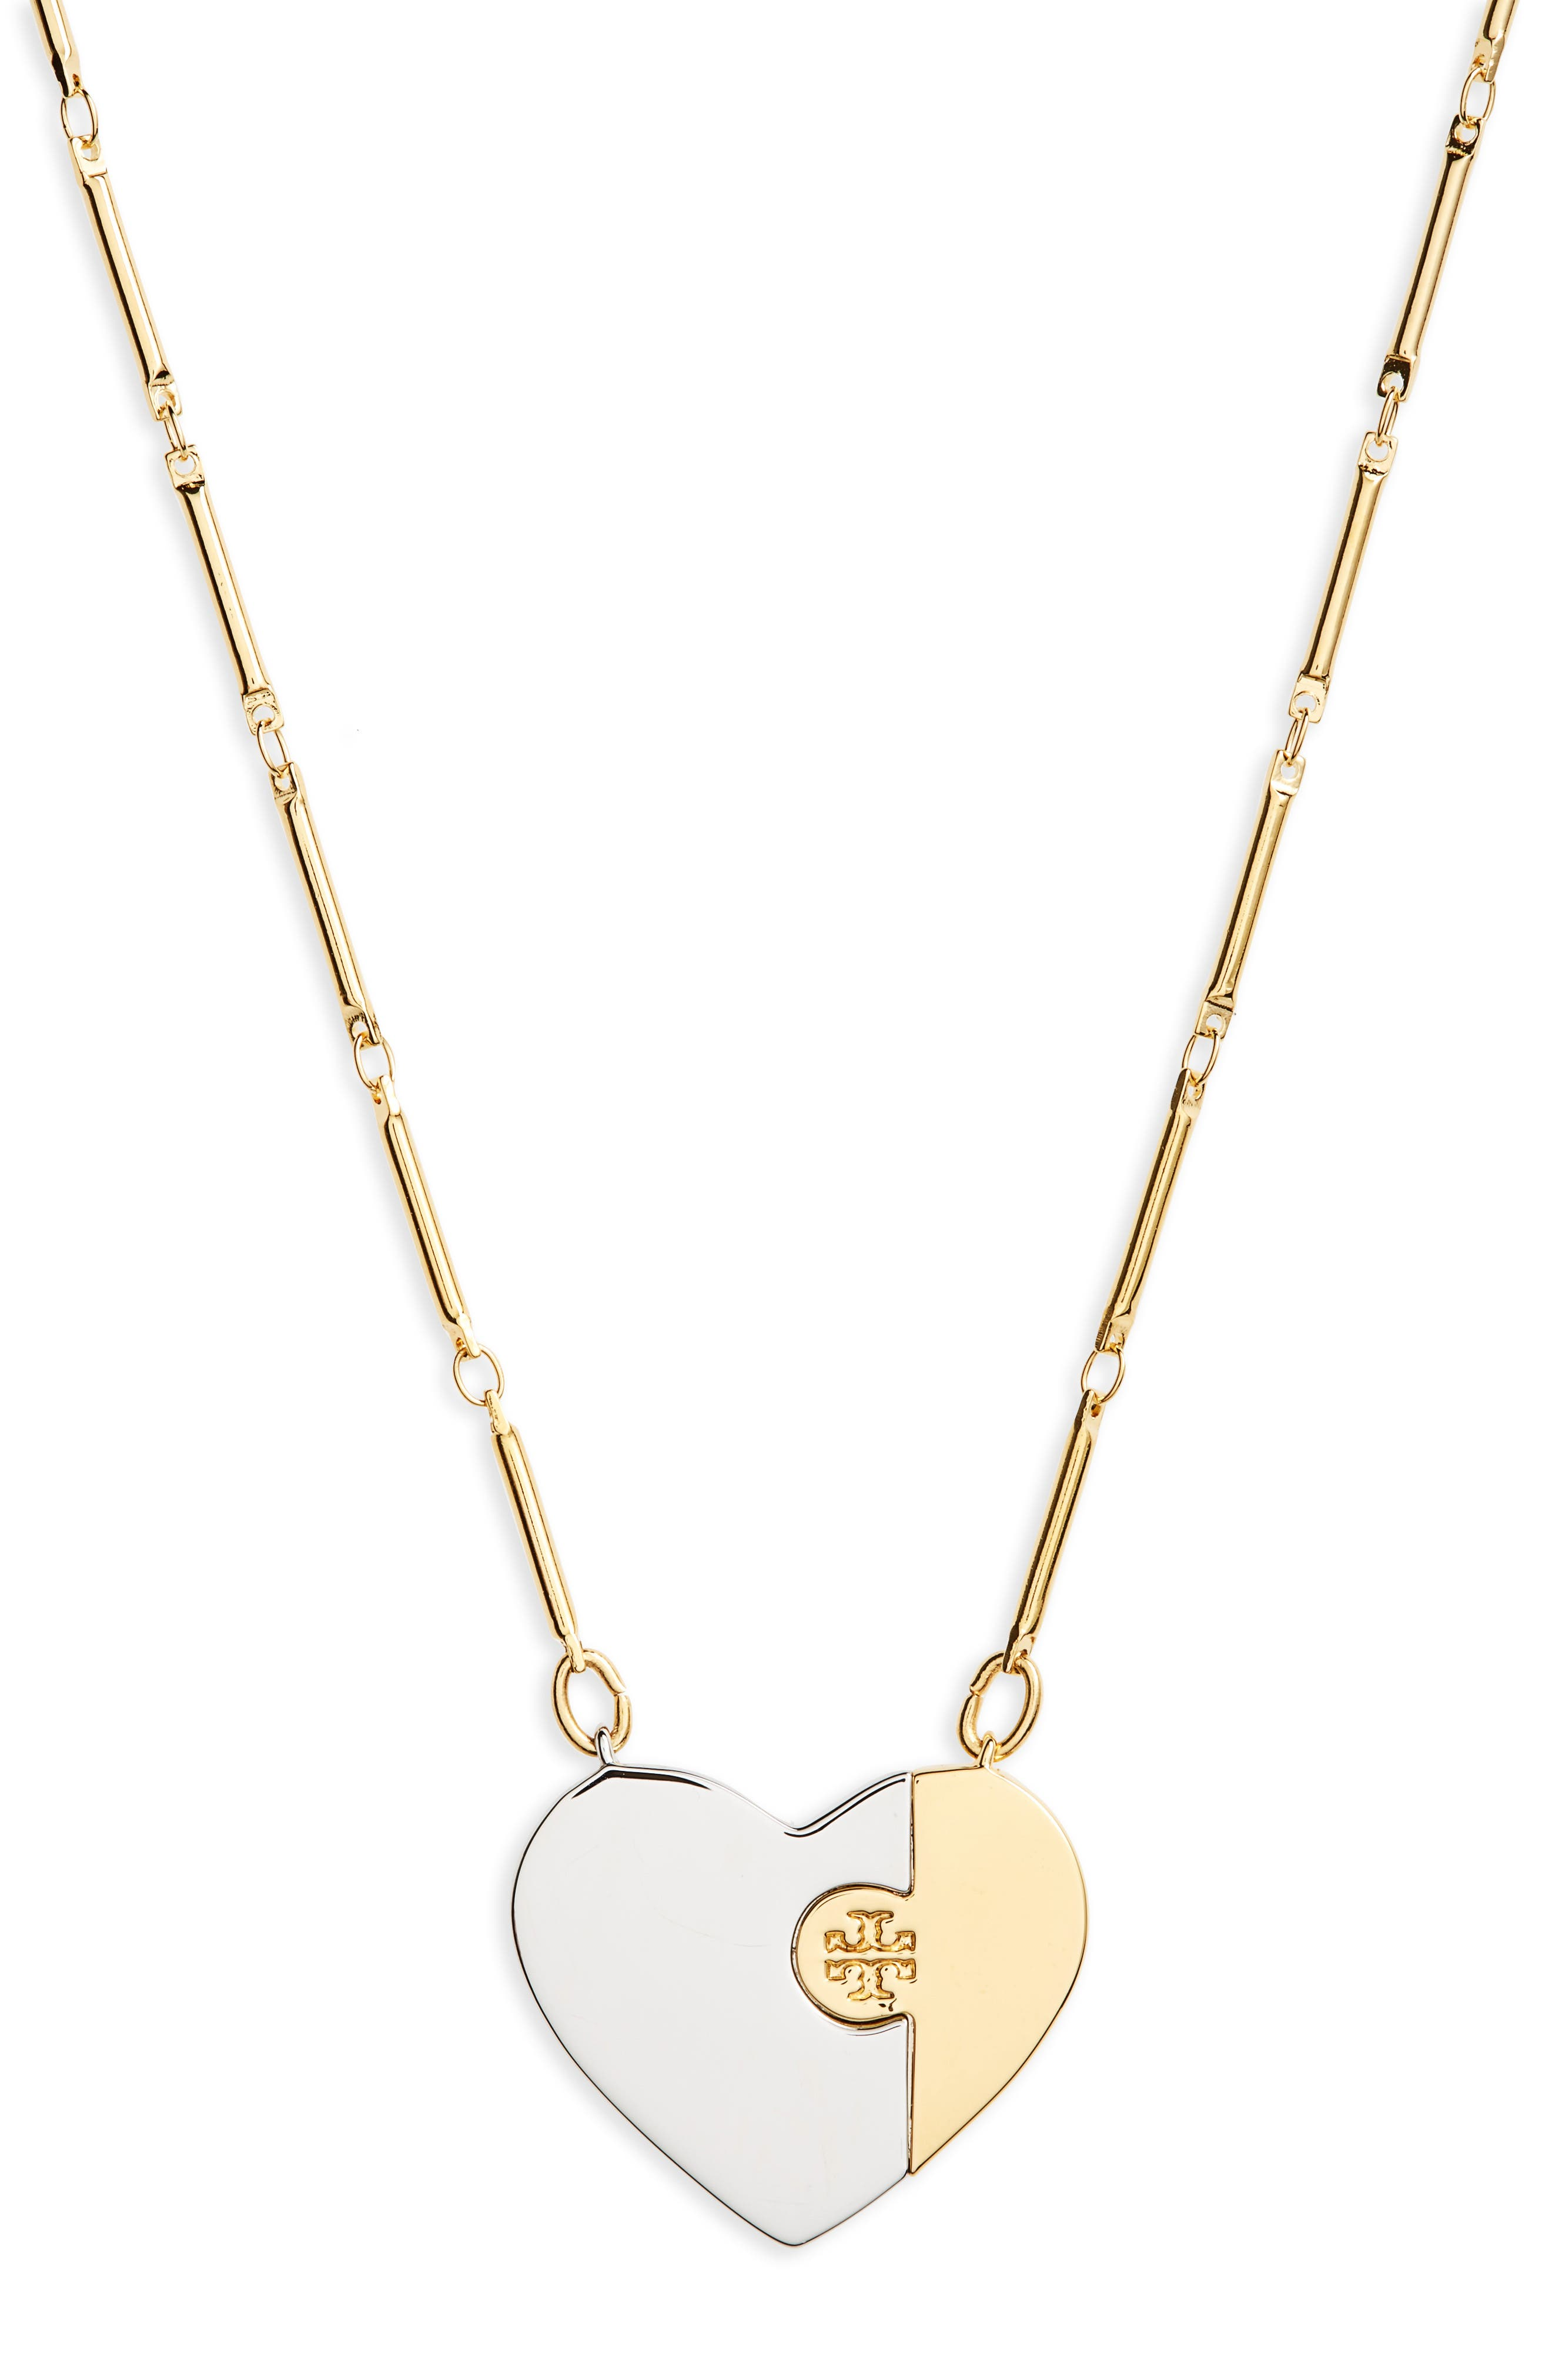 Puzzle Heart Pendant Necklace,                             Main thumbnail 1, color,                             710